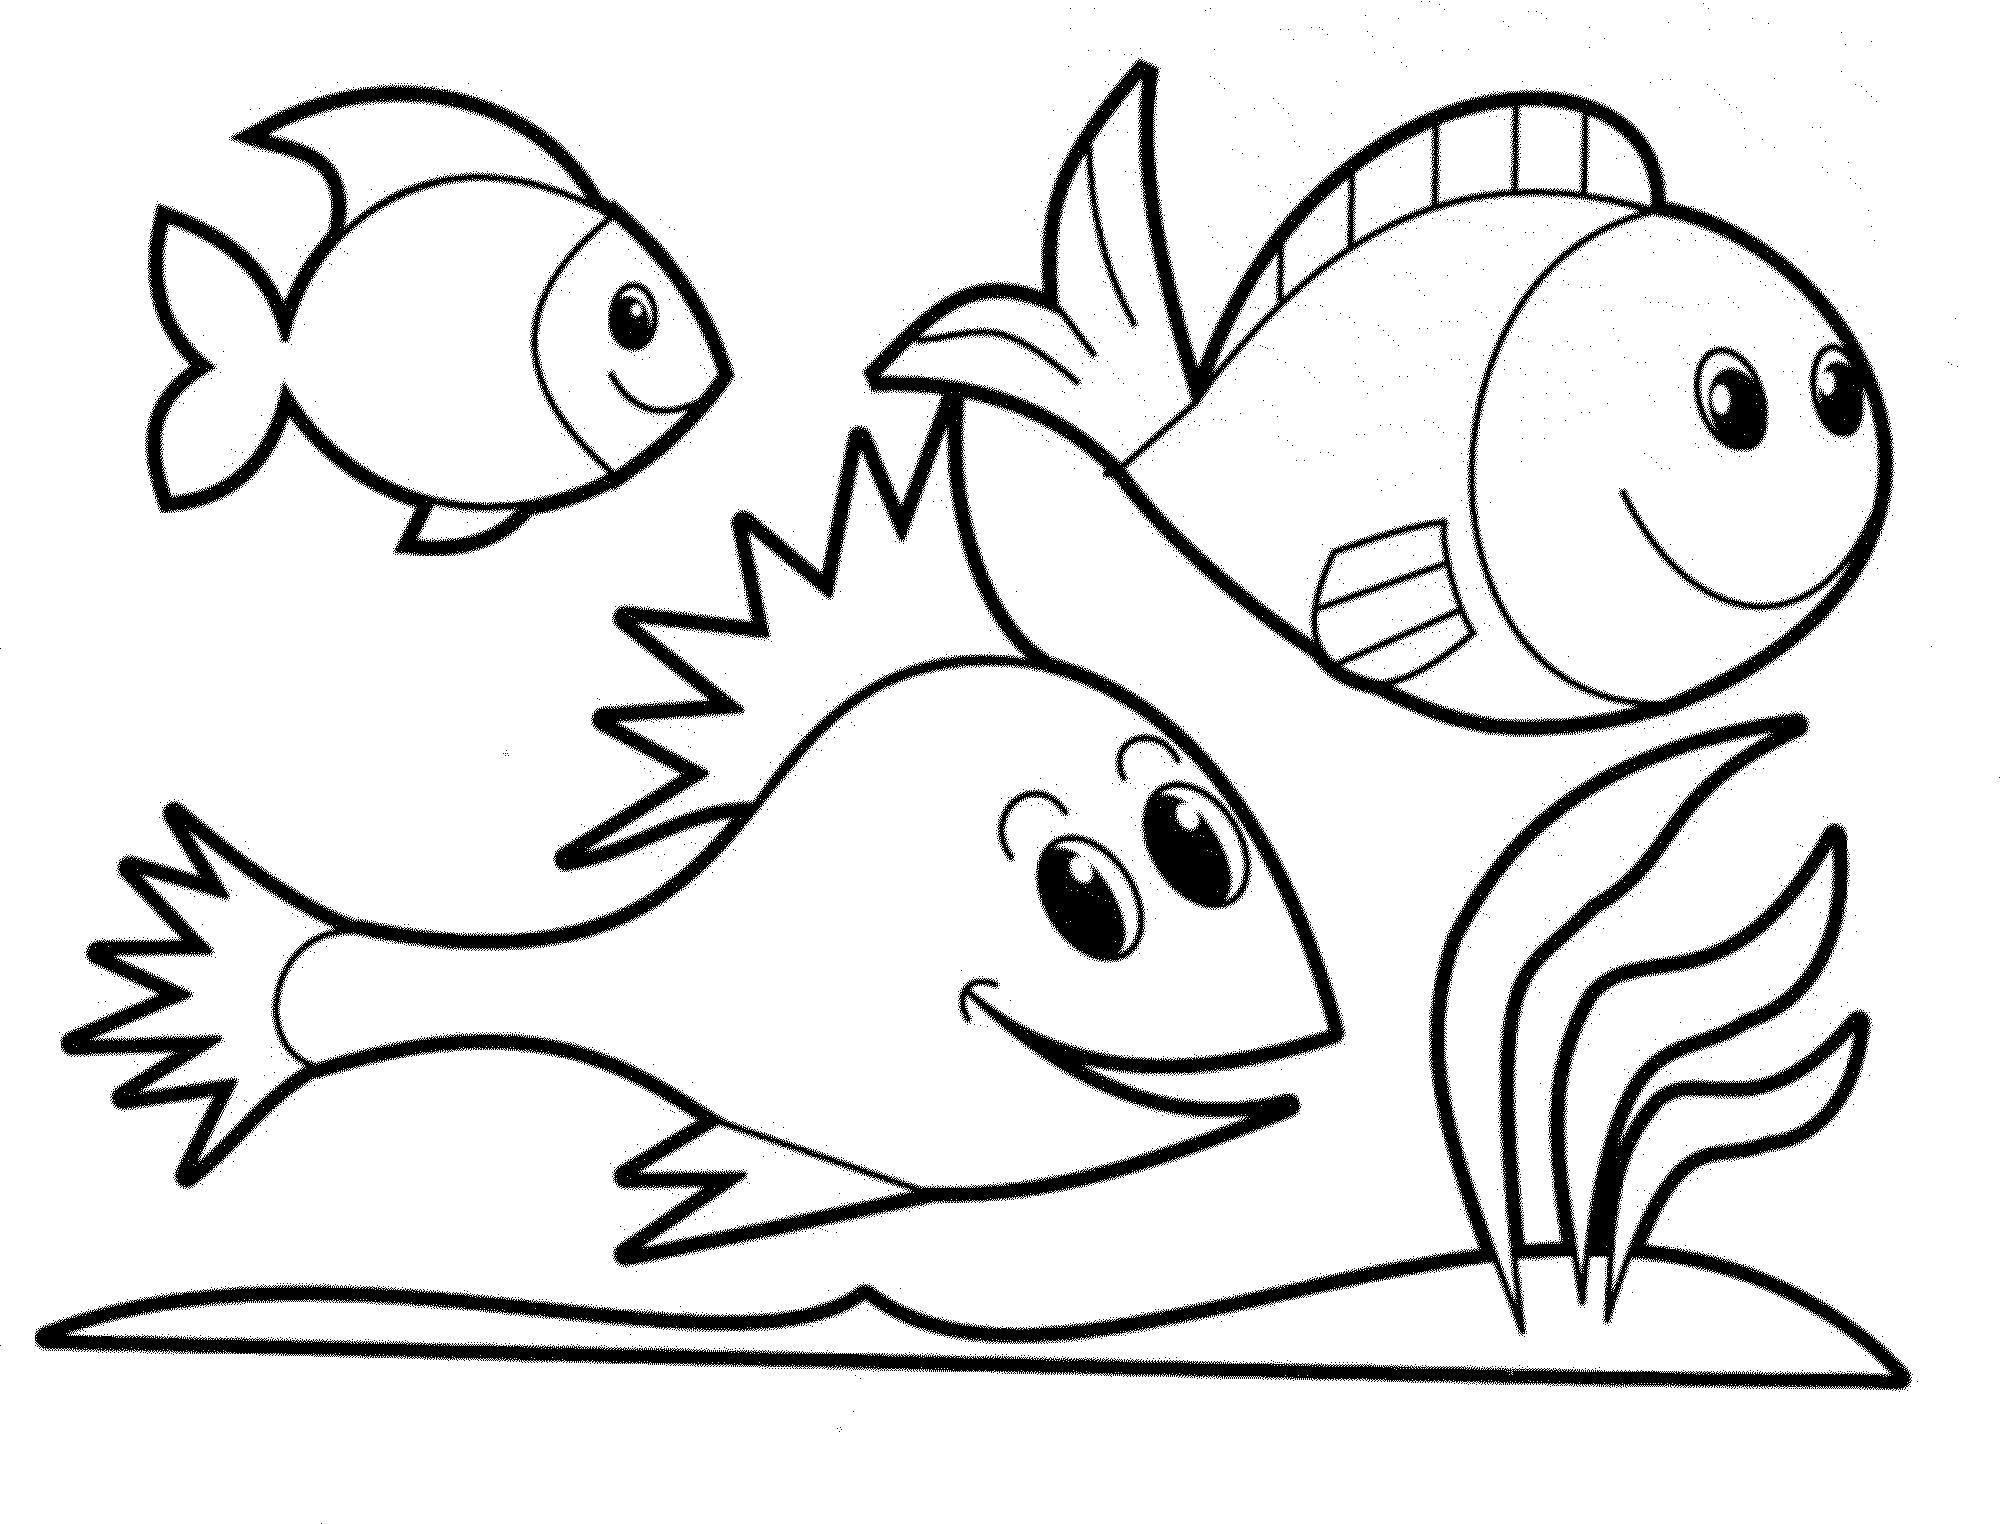 2000x1524 Loaves And Fishes Coloring Page To Print Of Tropical Fish Pages